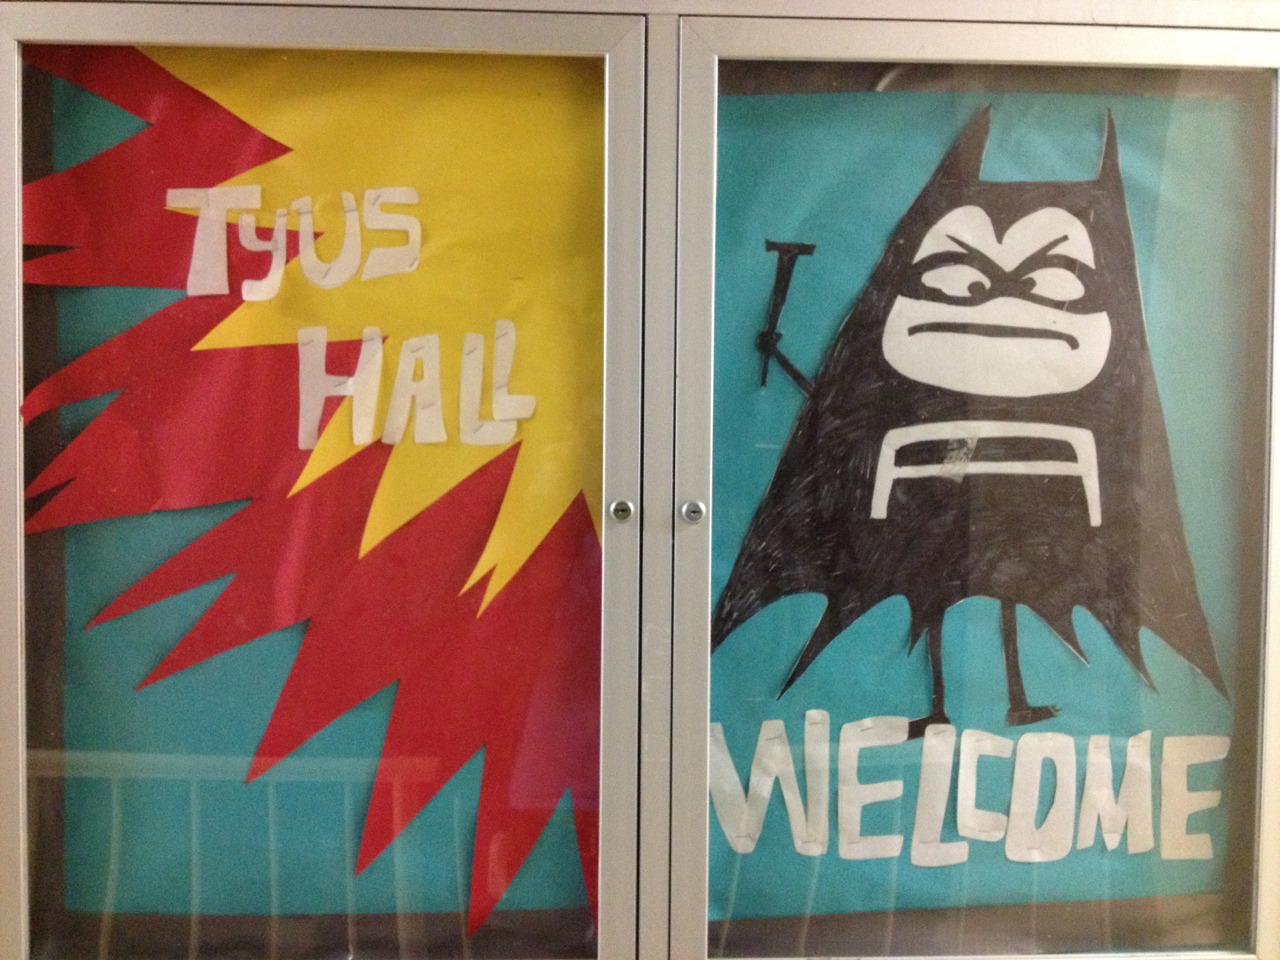 My Aquabats bulletin board I made for my dorm. I think it came out pretty good.